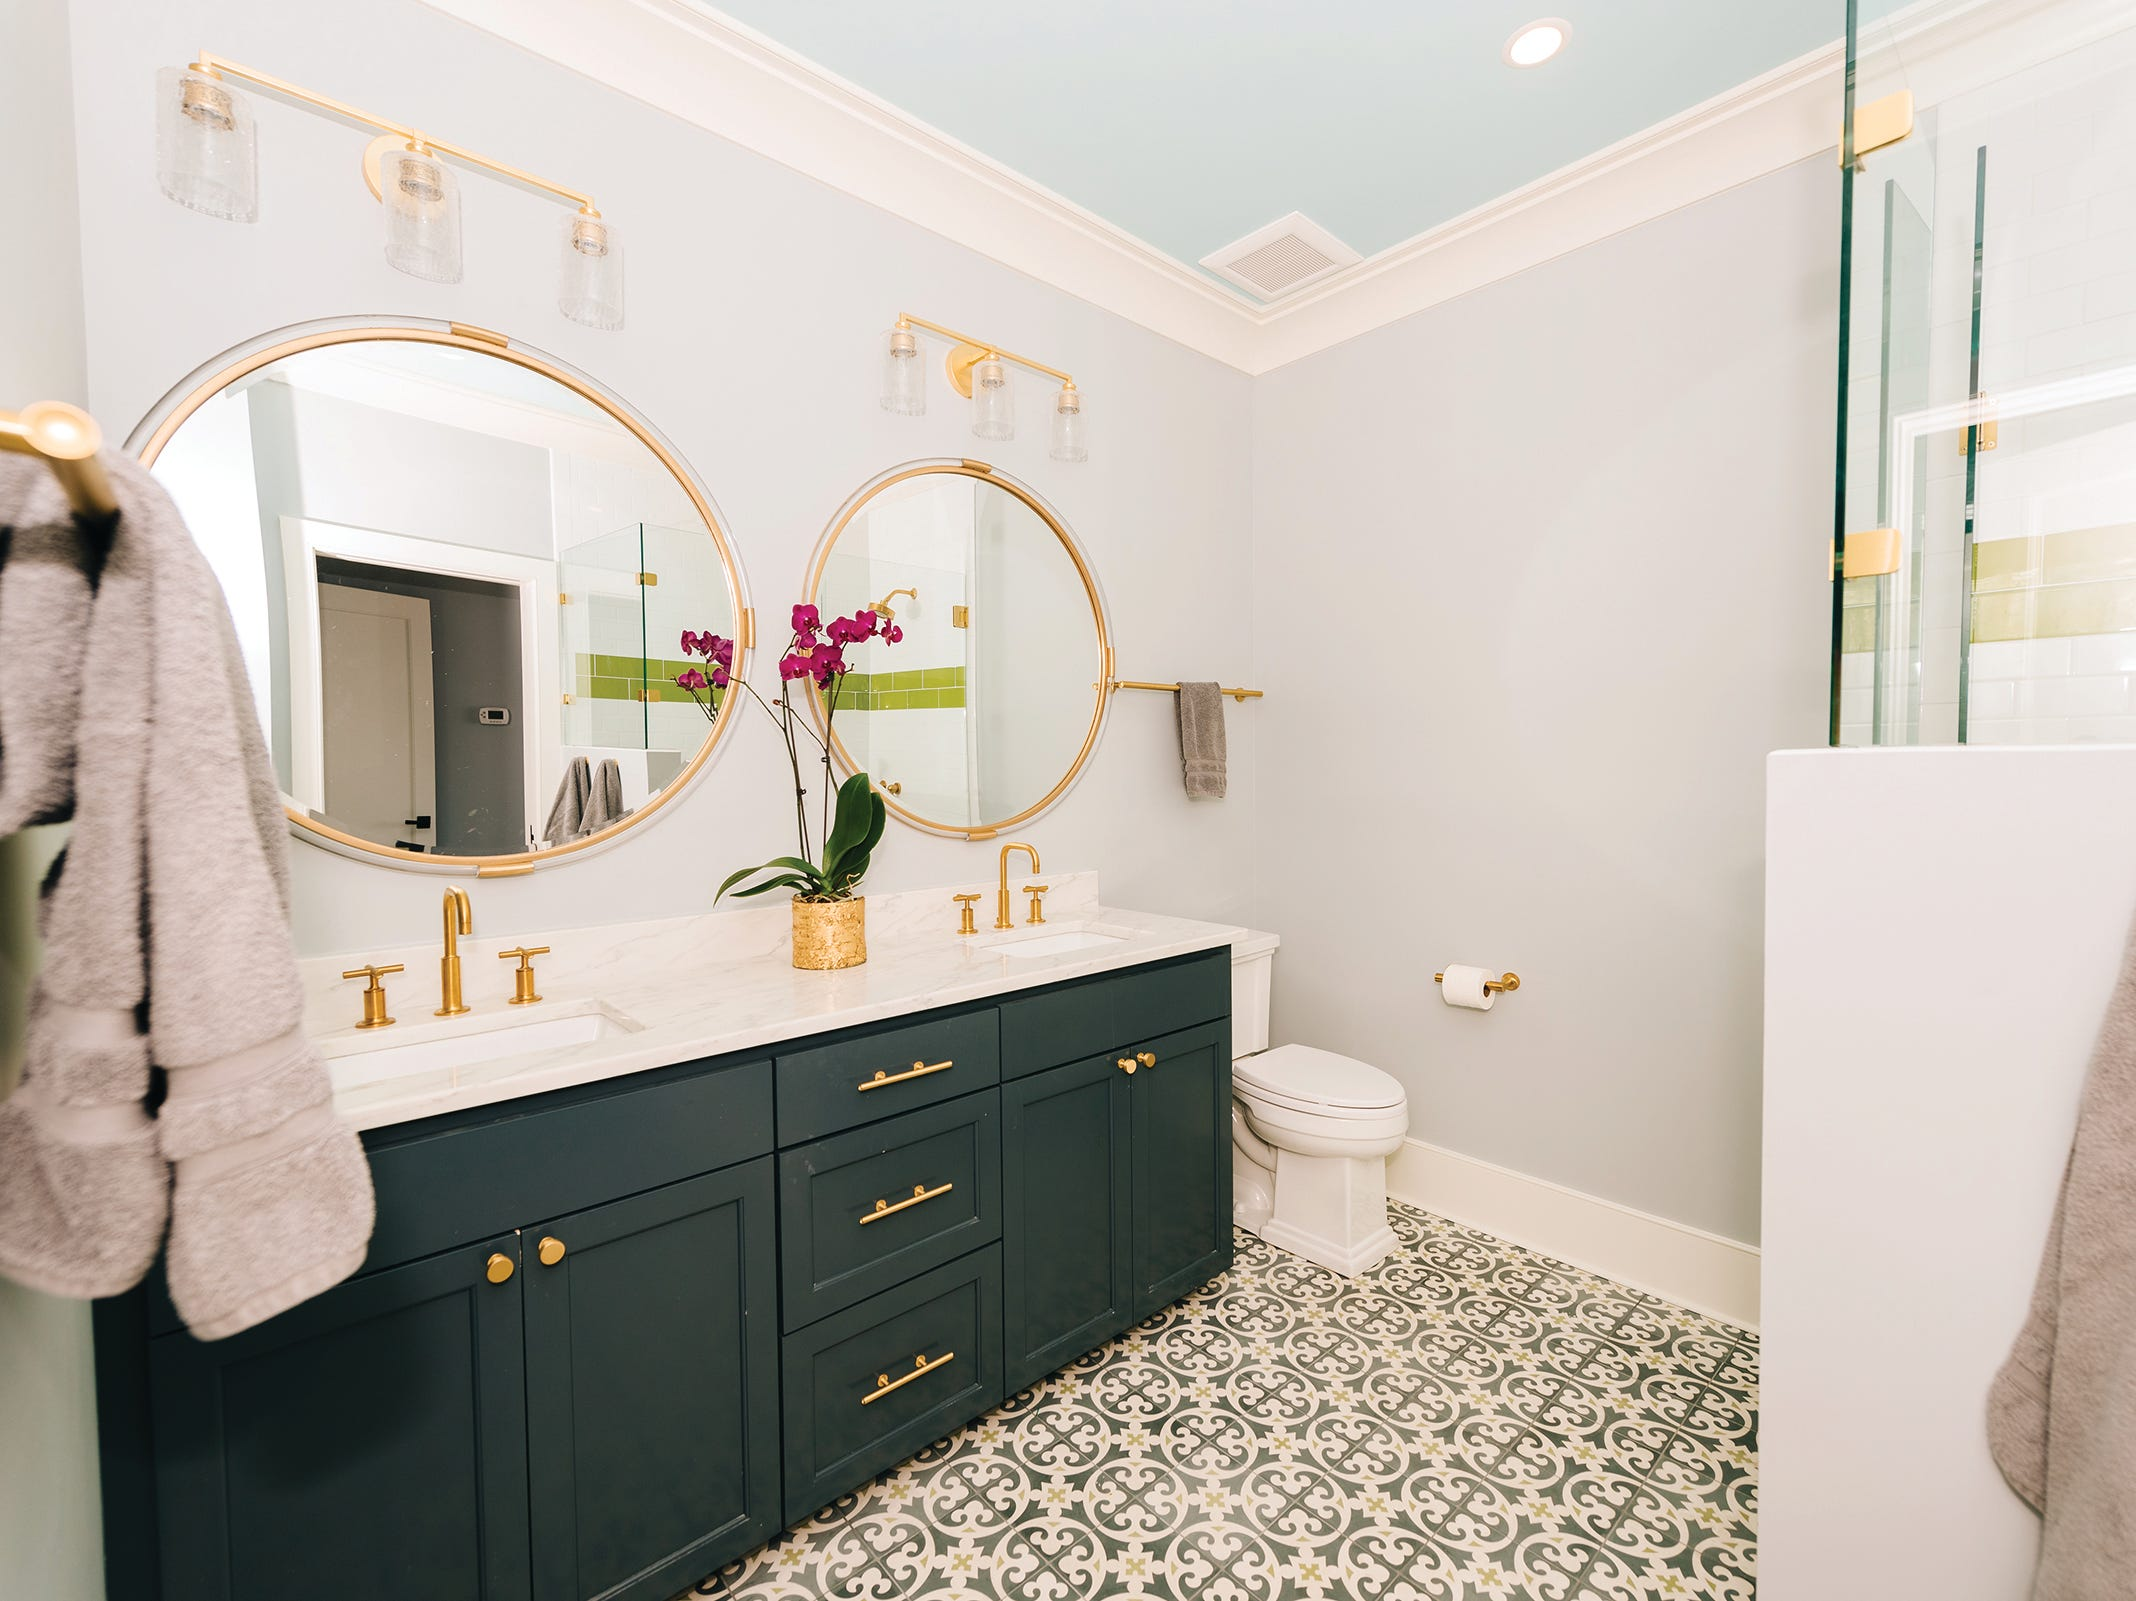 At first glance, a bathroom might seem like an odd choice as a favorite room. But if you sit back and think about how much time we as women actually spend in there, it makes a lot more sense to keep it in consideration.